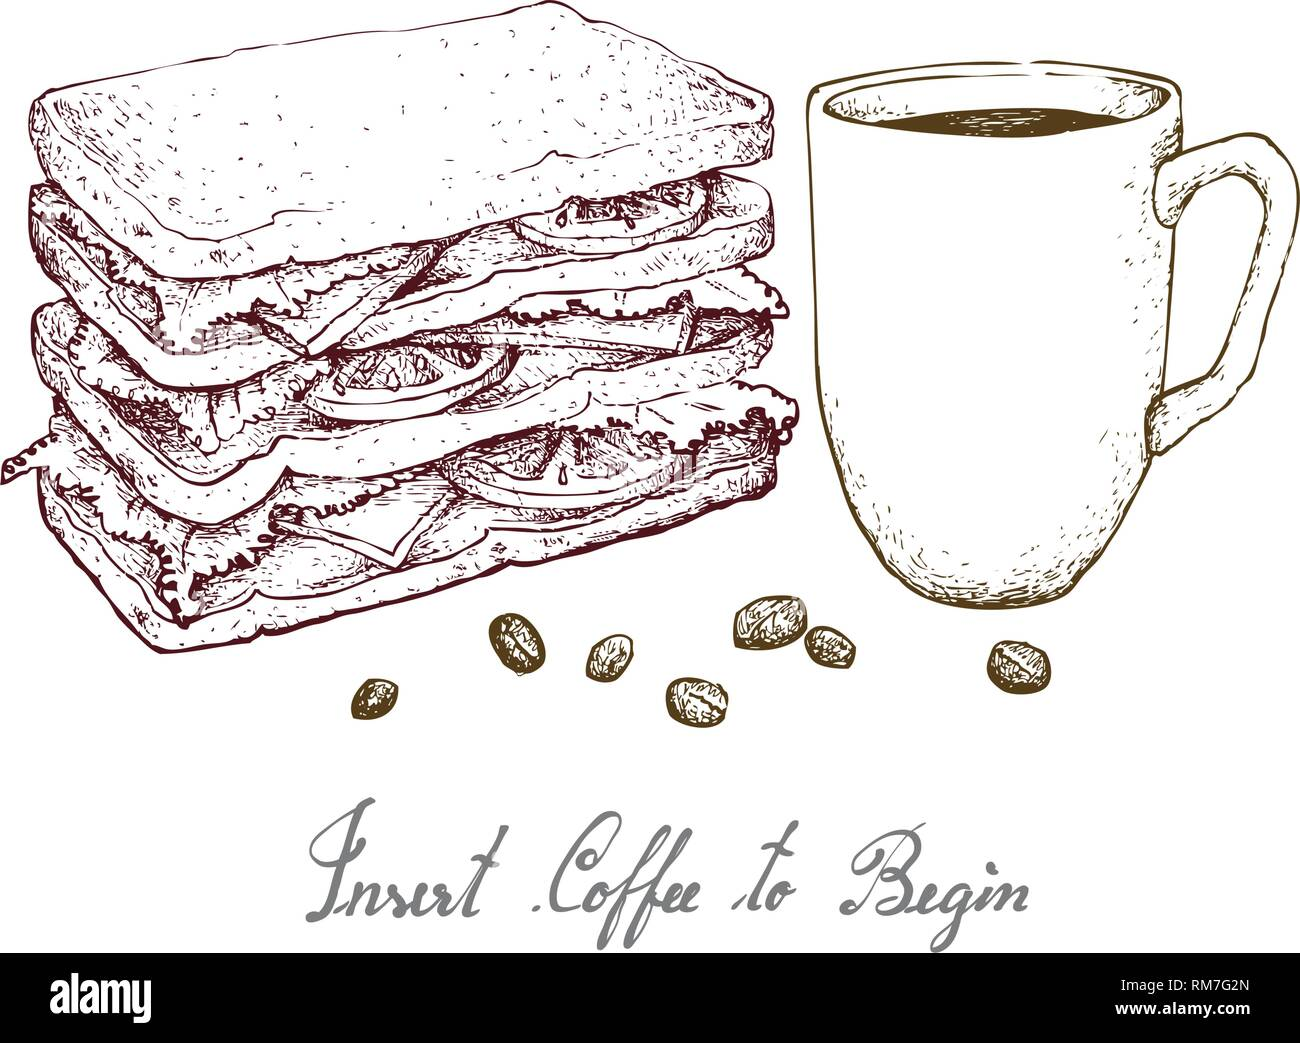 Insert Coffee to Begin, Illustration Hand Drawn Sketch of A Cup of Coffee with Grilled Sandwich Isolated on White Background. Stock Vector